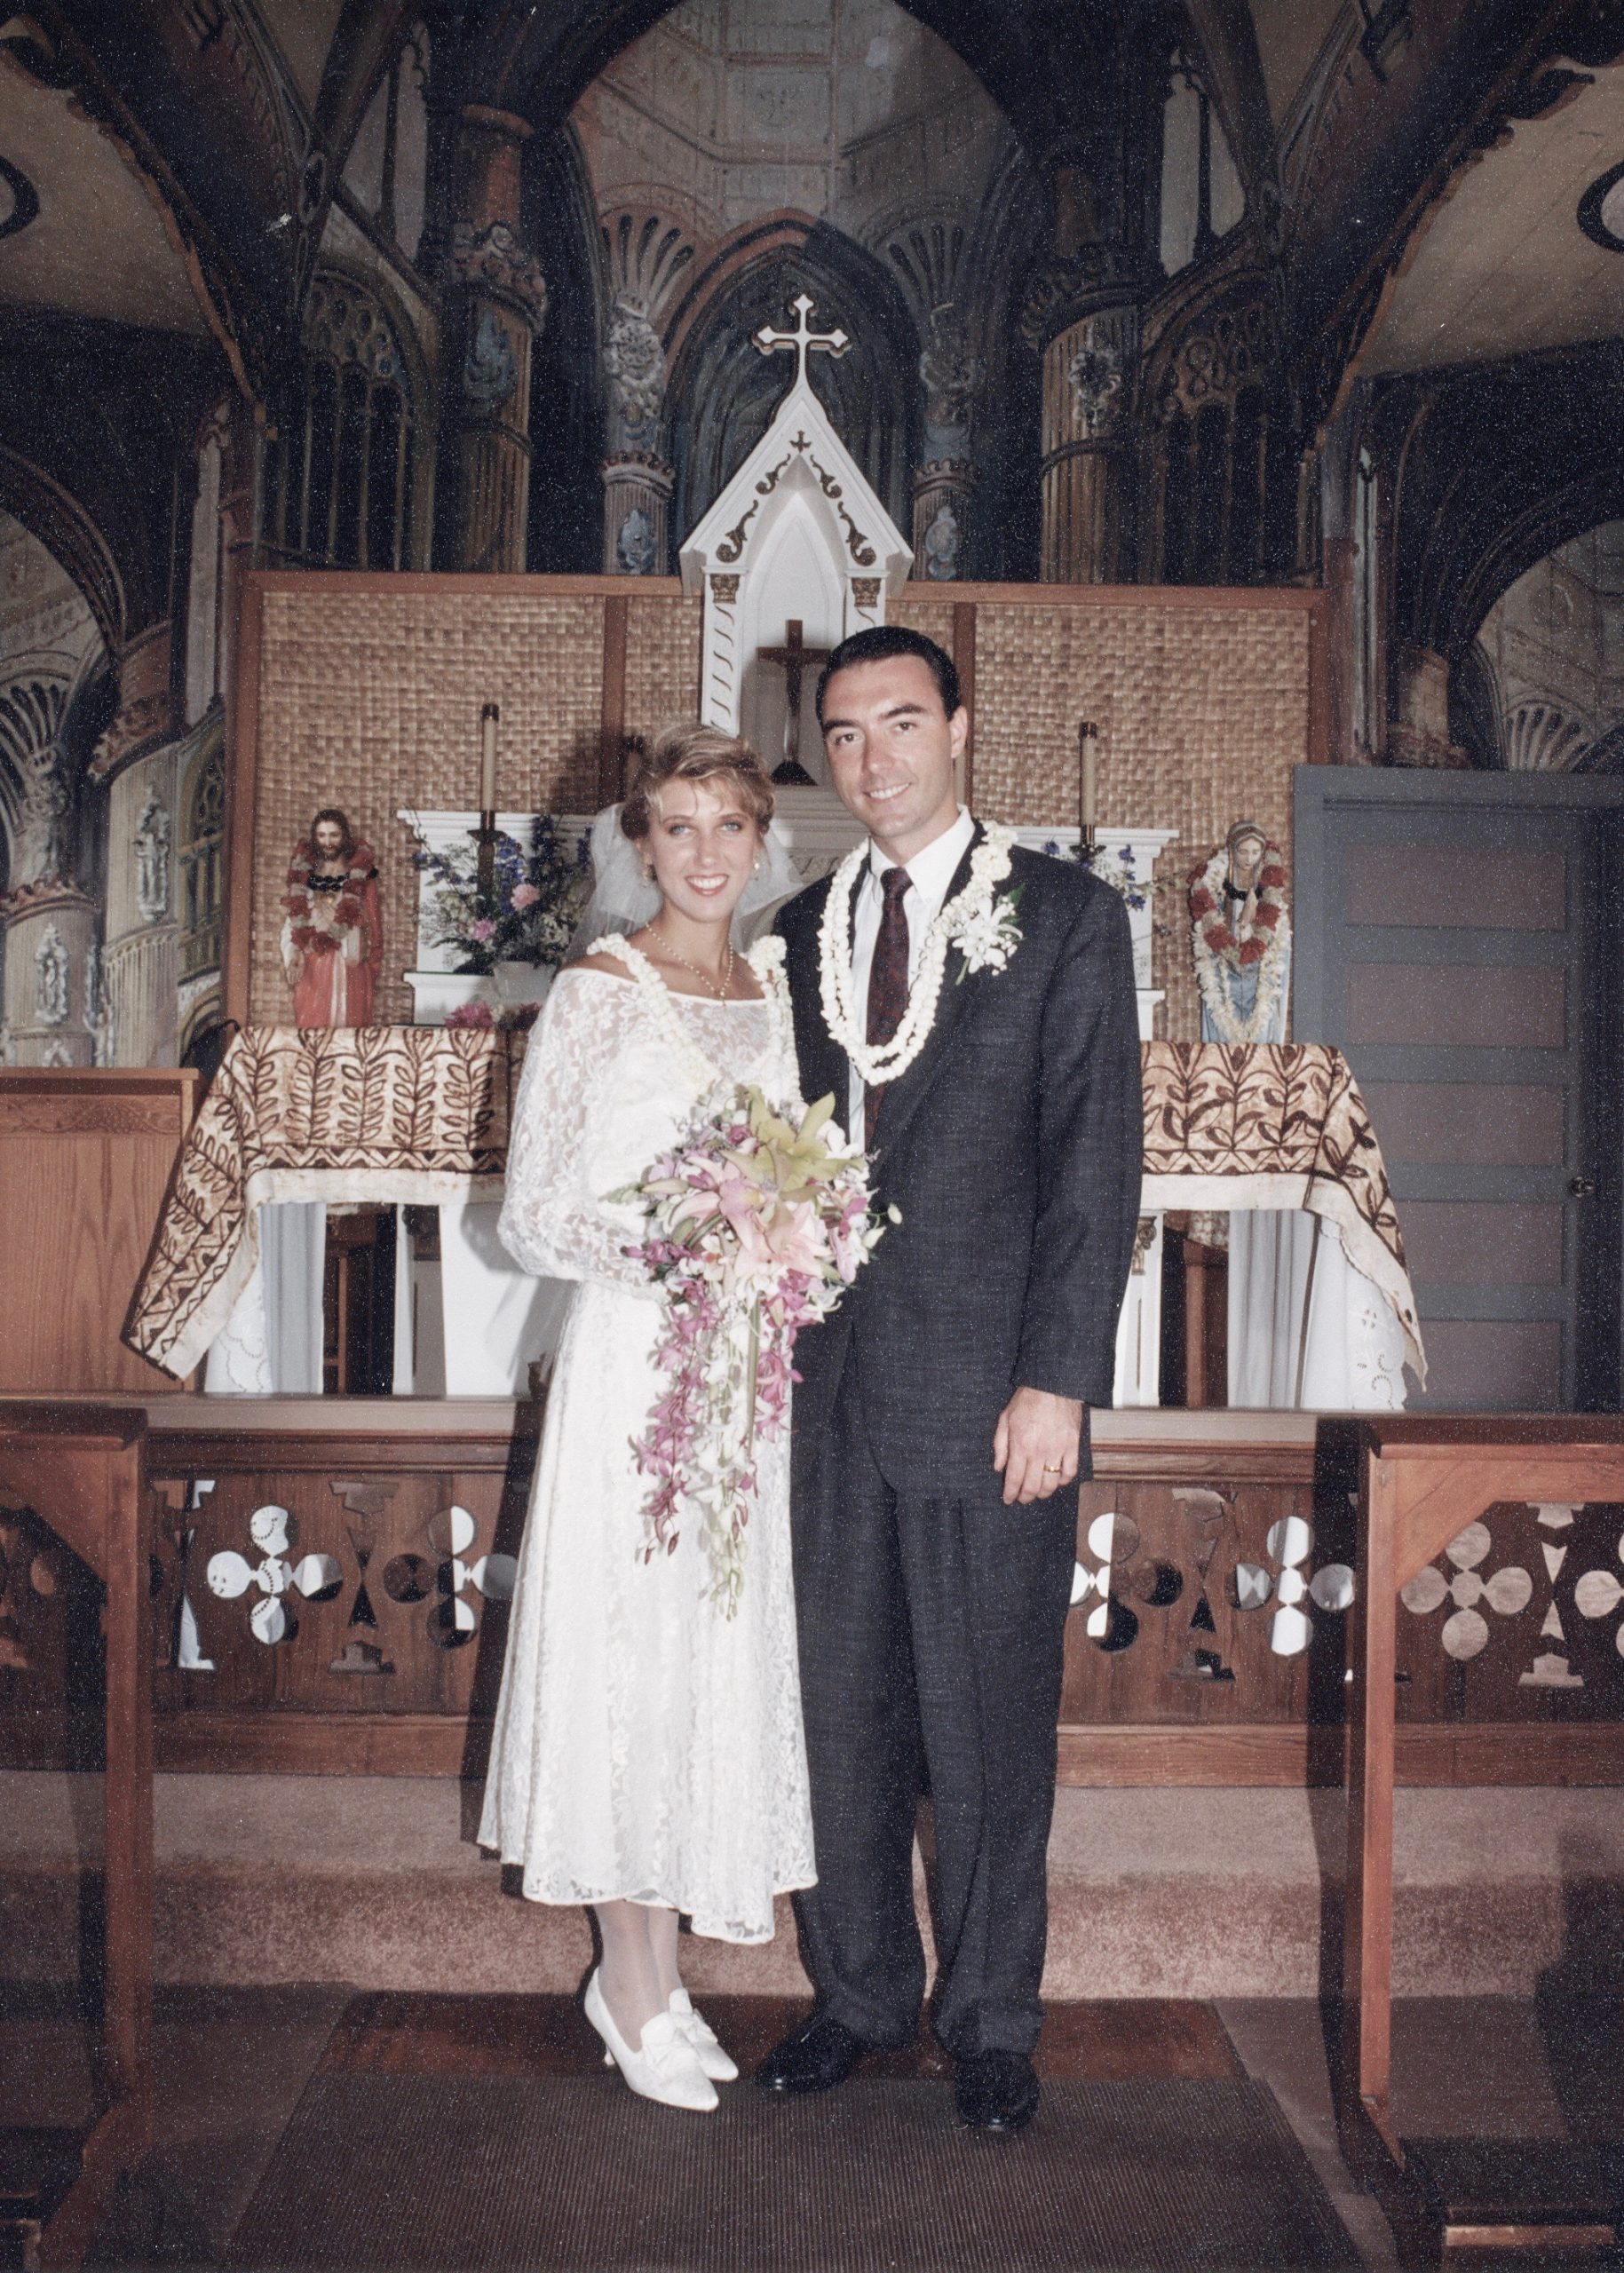 At the alter, 1994.